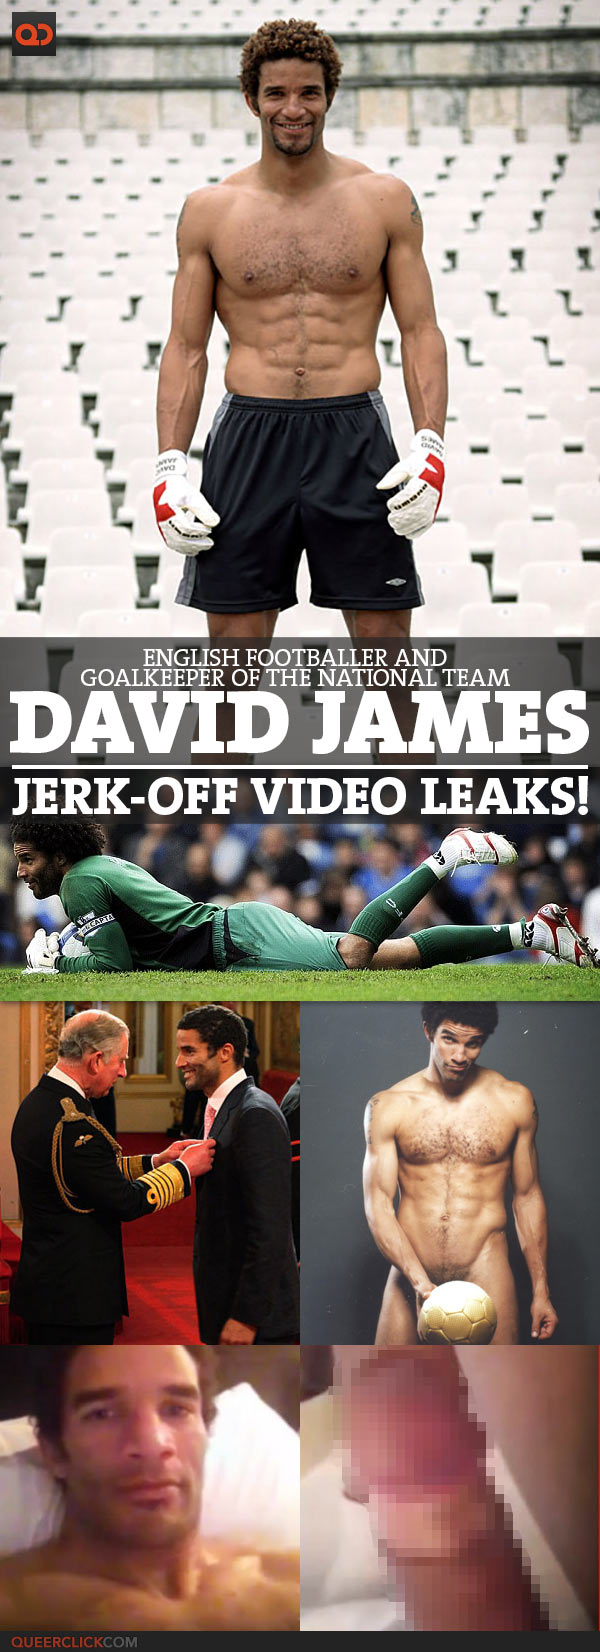 David James, English Footballer And Goalkeeper Of The National Team, Jerk Off Video Leaks!